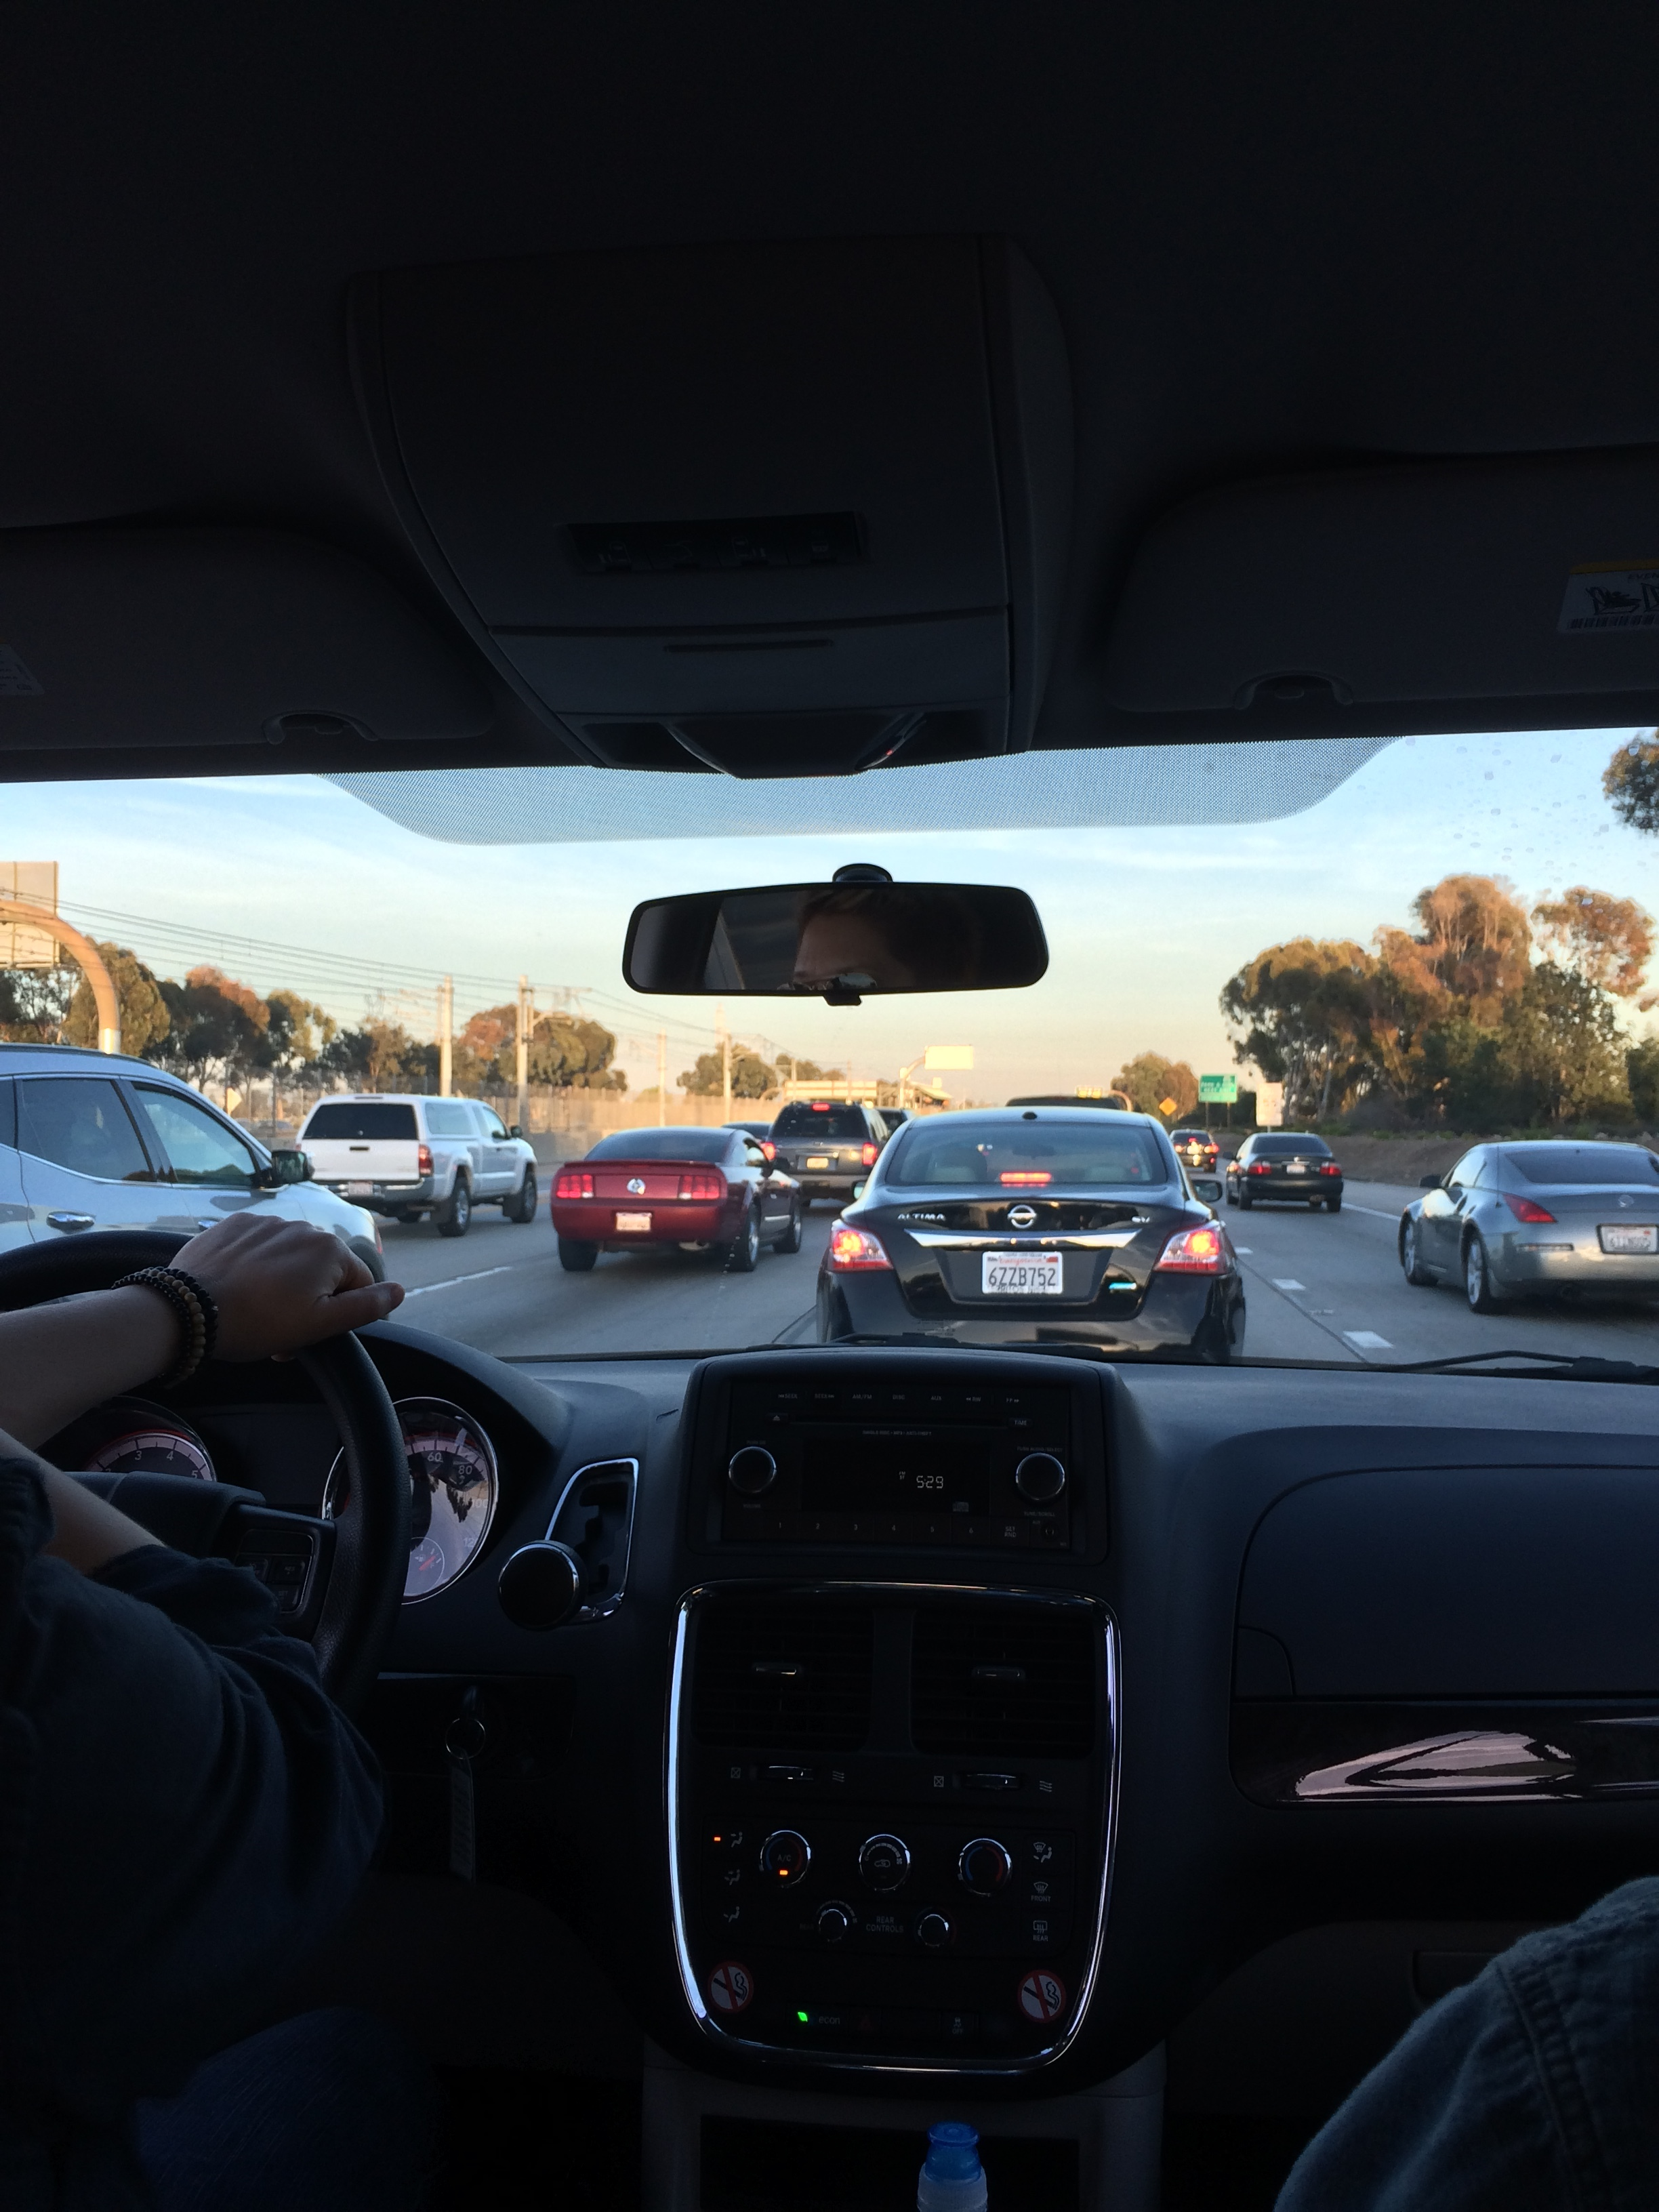 And the traffic was heavy from the start...